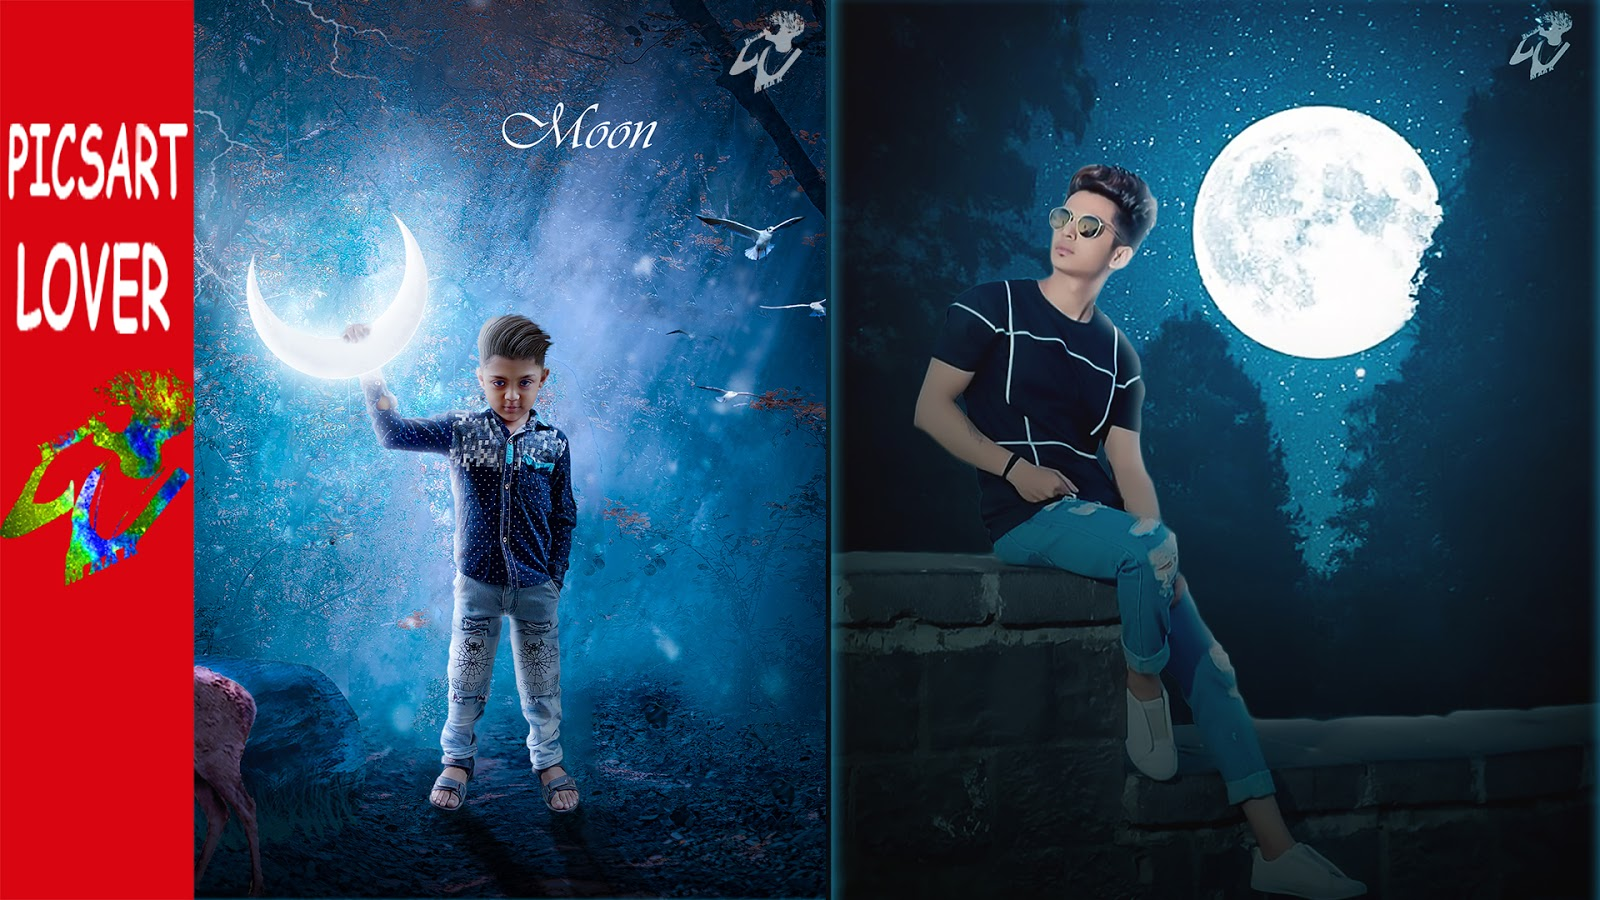 MOON LIGHT EDITING IN PICSART MANIPULATION BACKGROUND DOWNLOAD